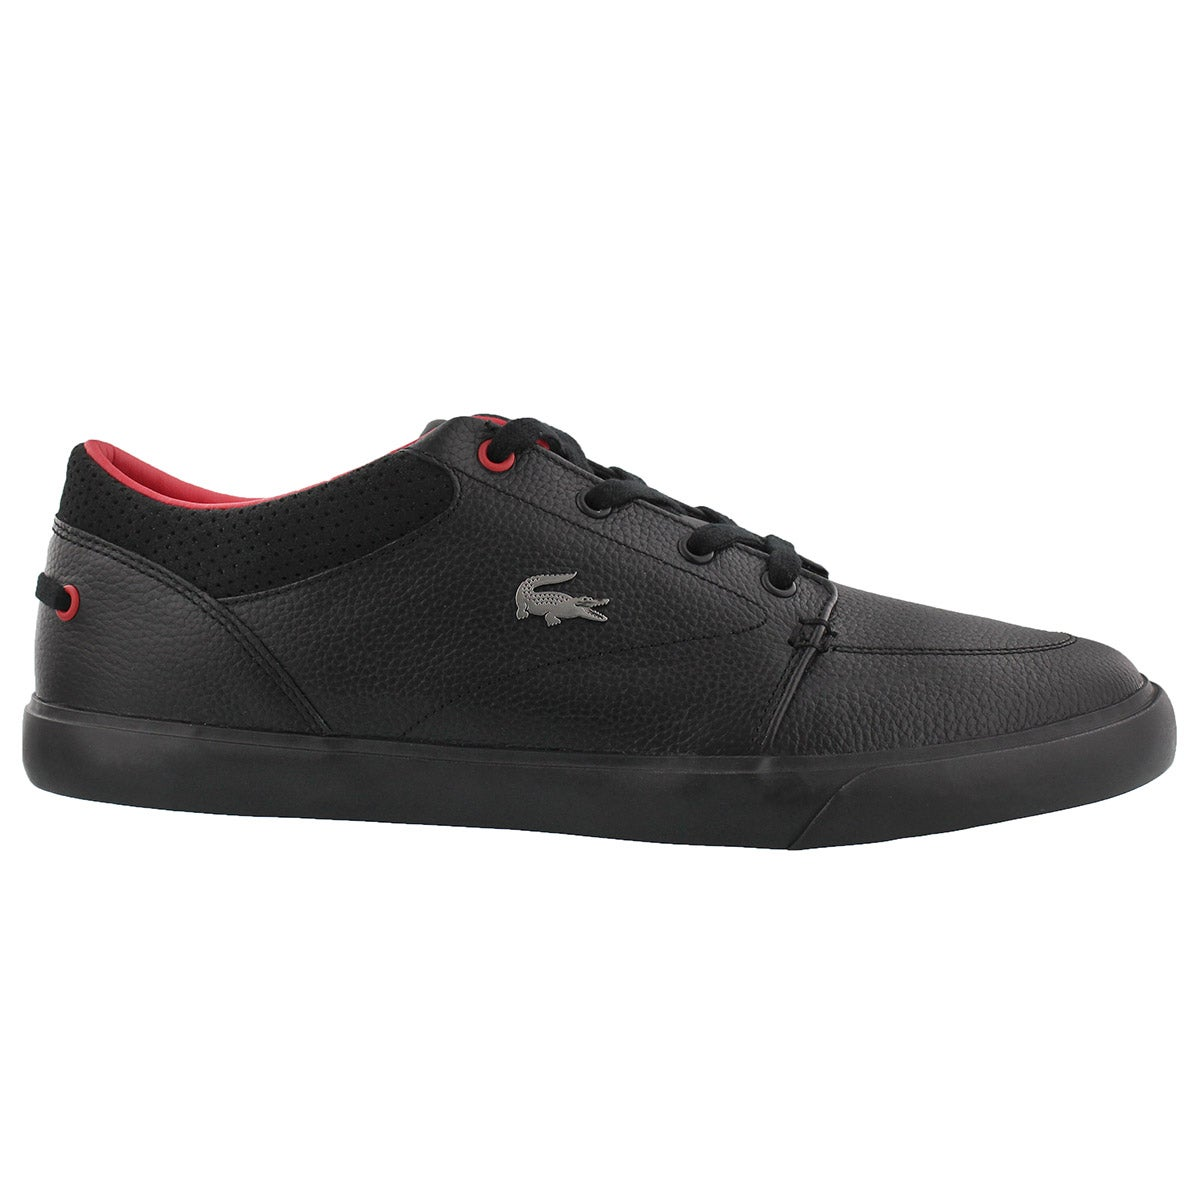 Mns Bayliss Vulc 317 black/red sneaker